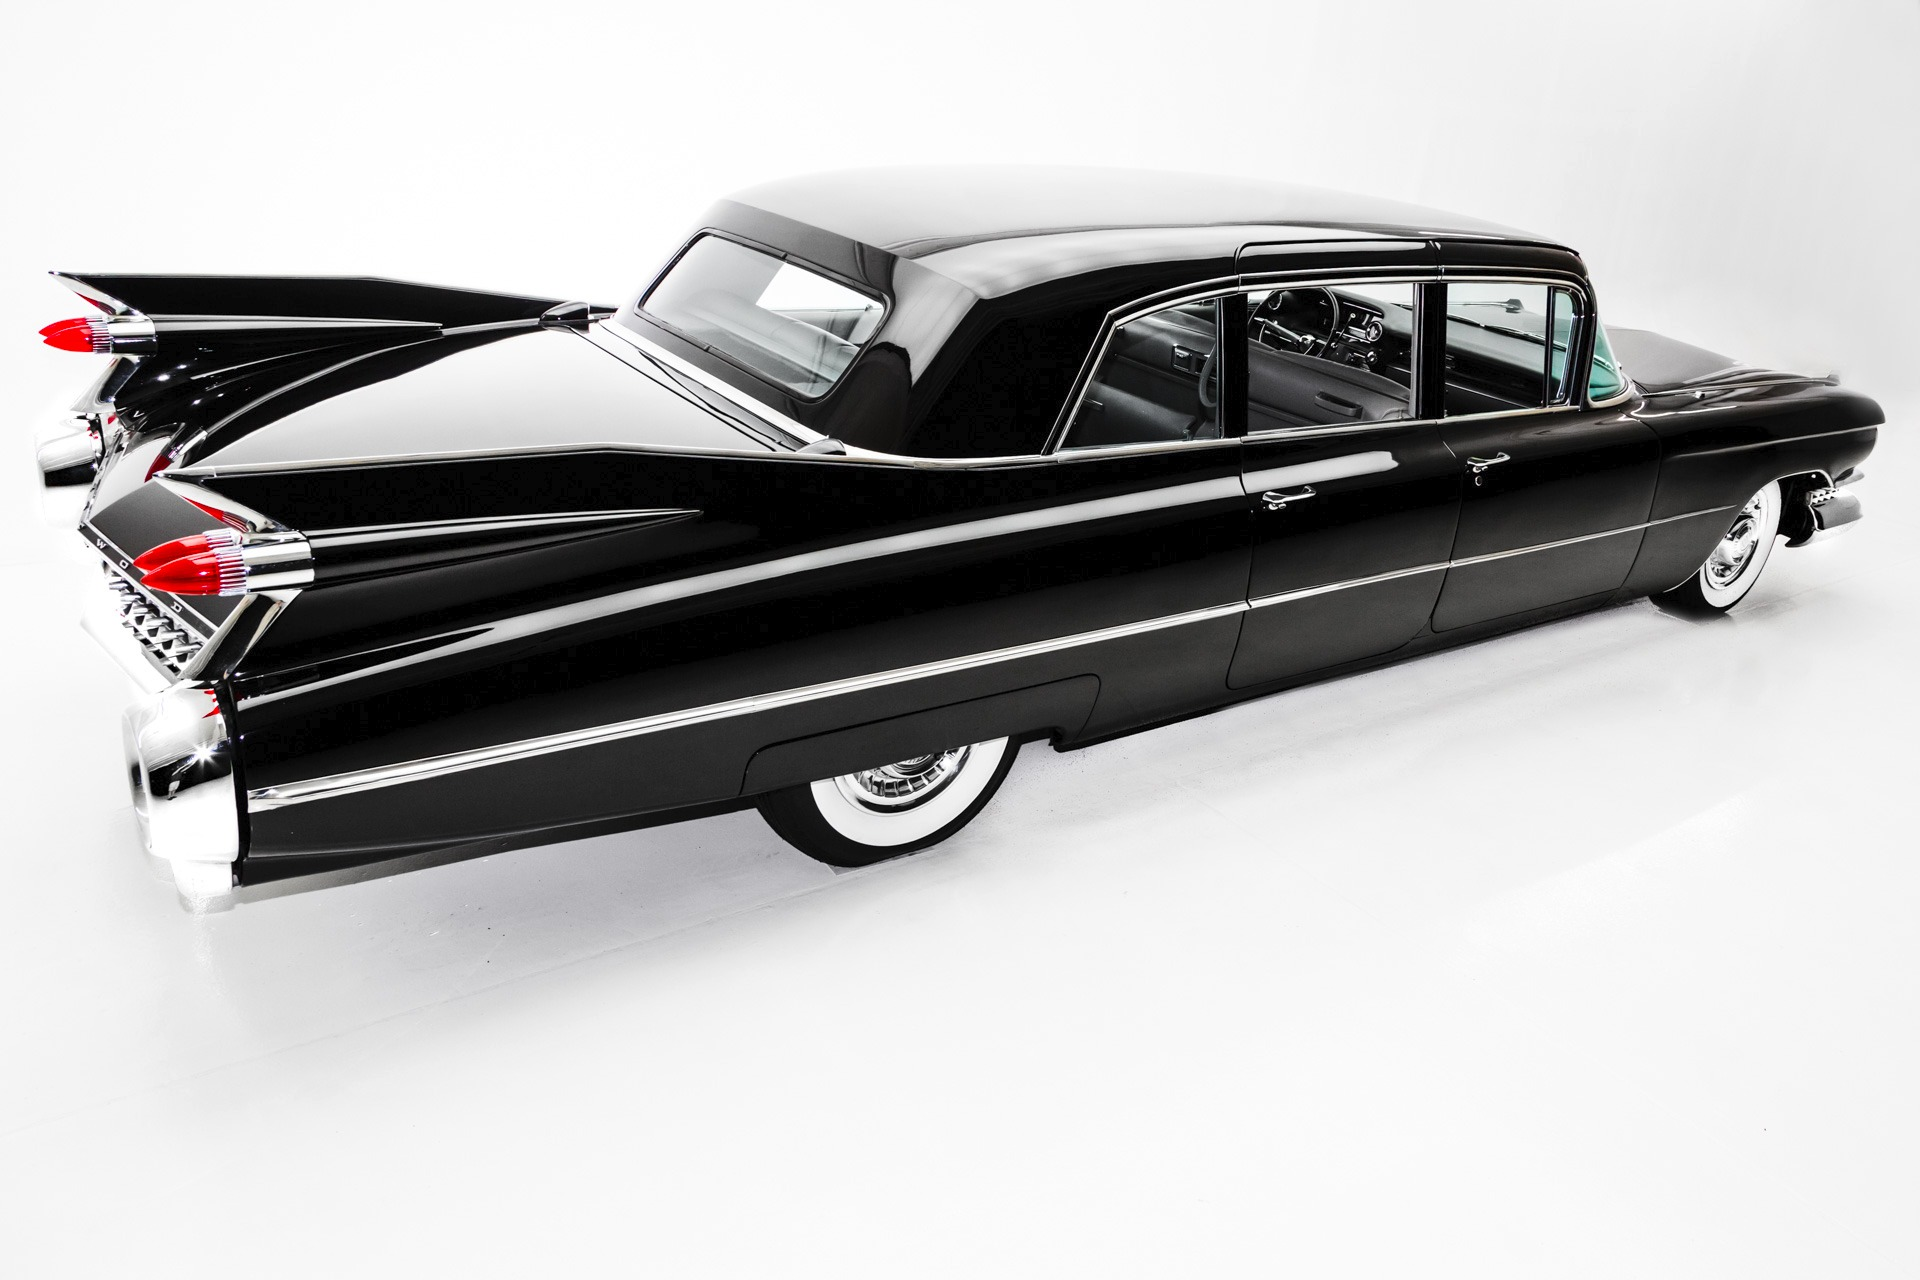 1959 Cadillac Fleetwood Limousine RARE Leather - American Dream ...